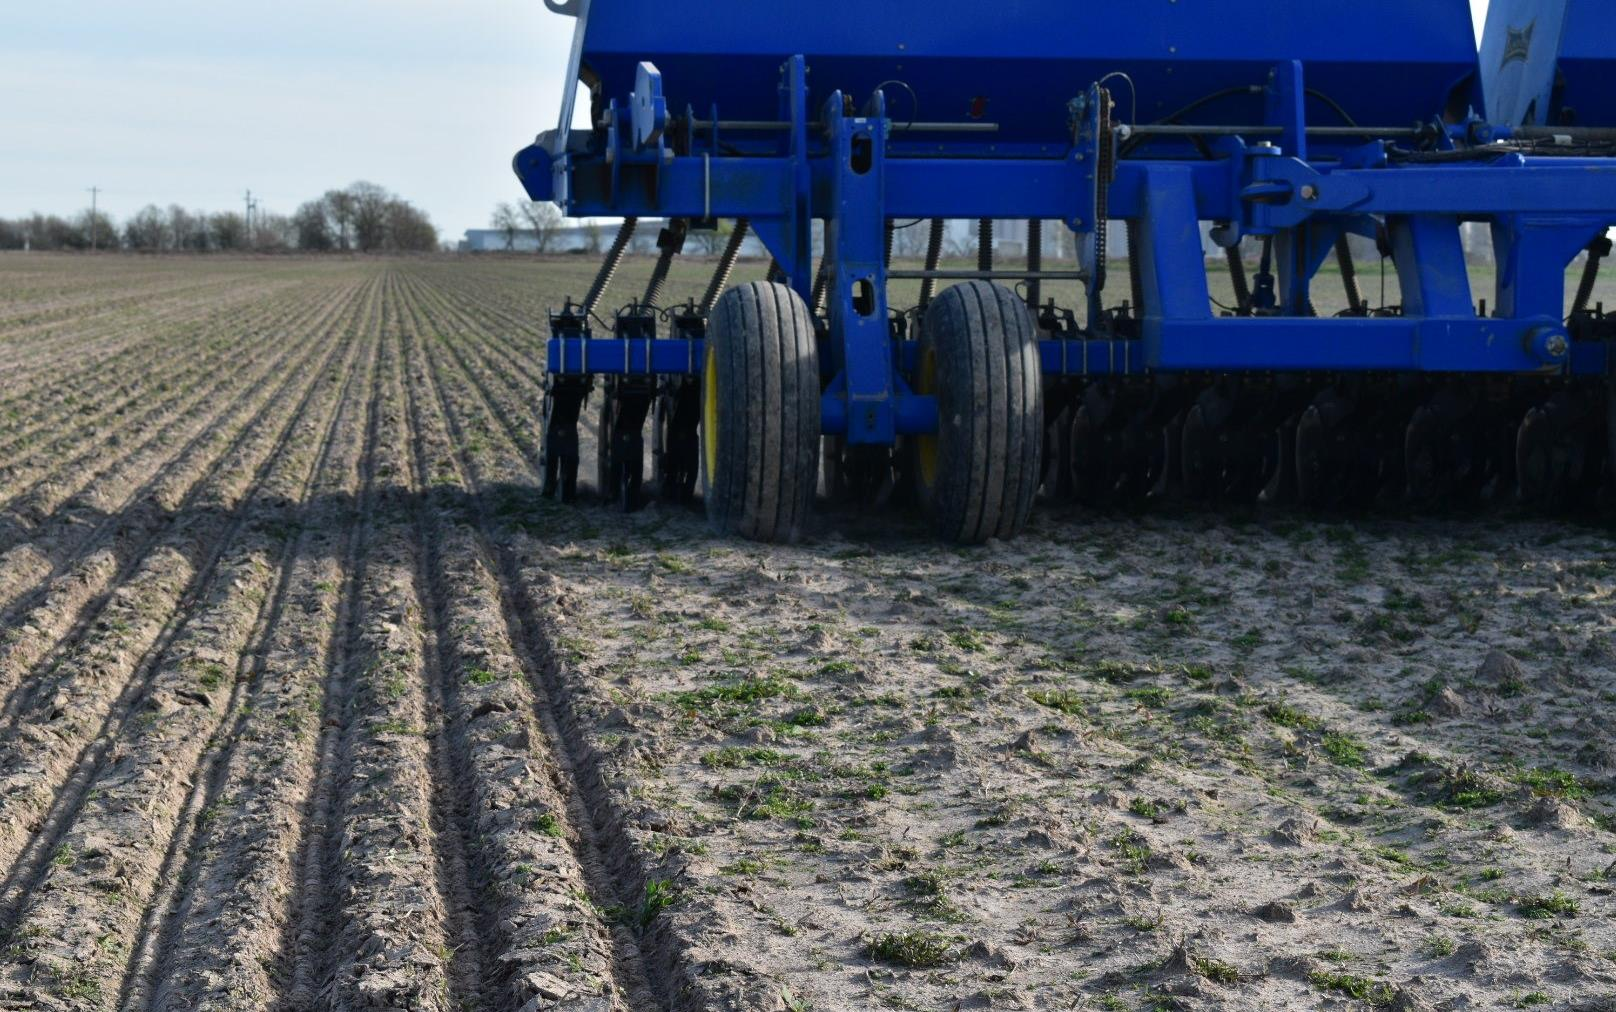 Blue combine creating furrows in new field